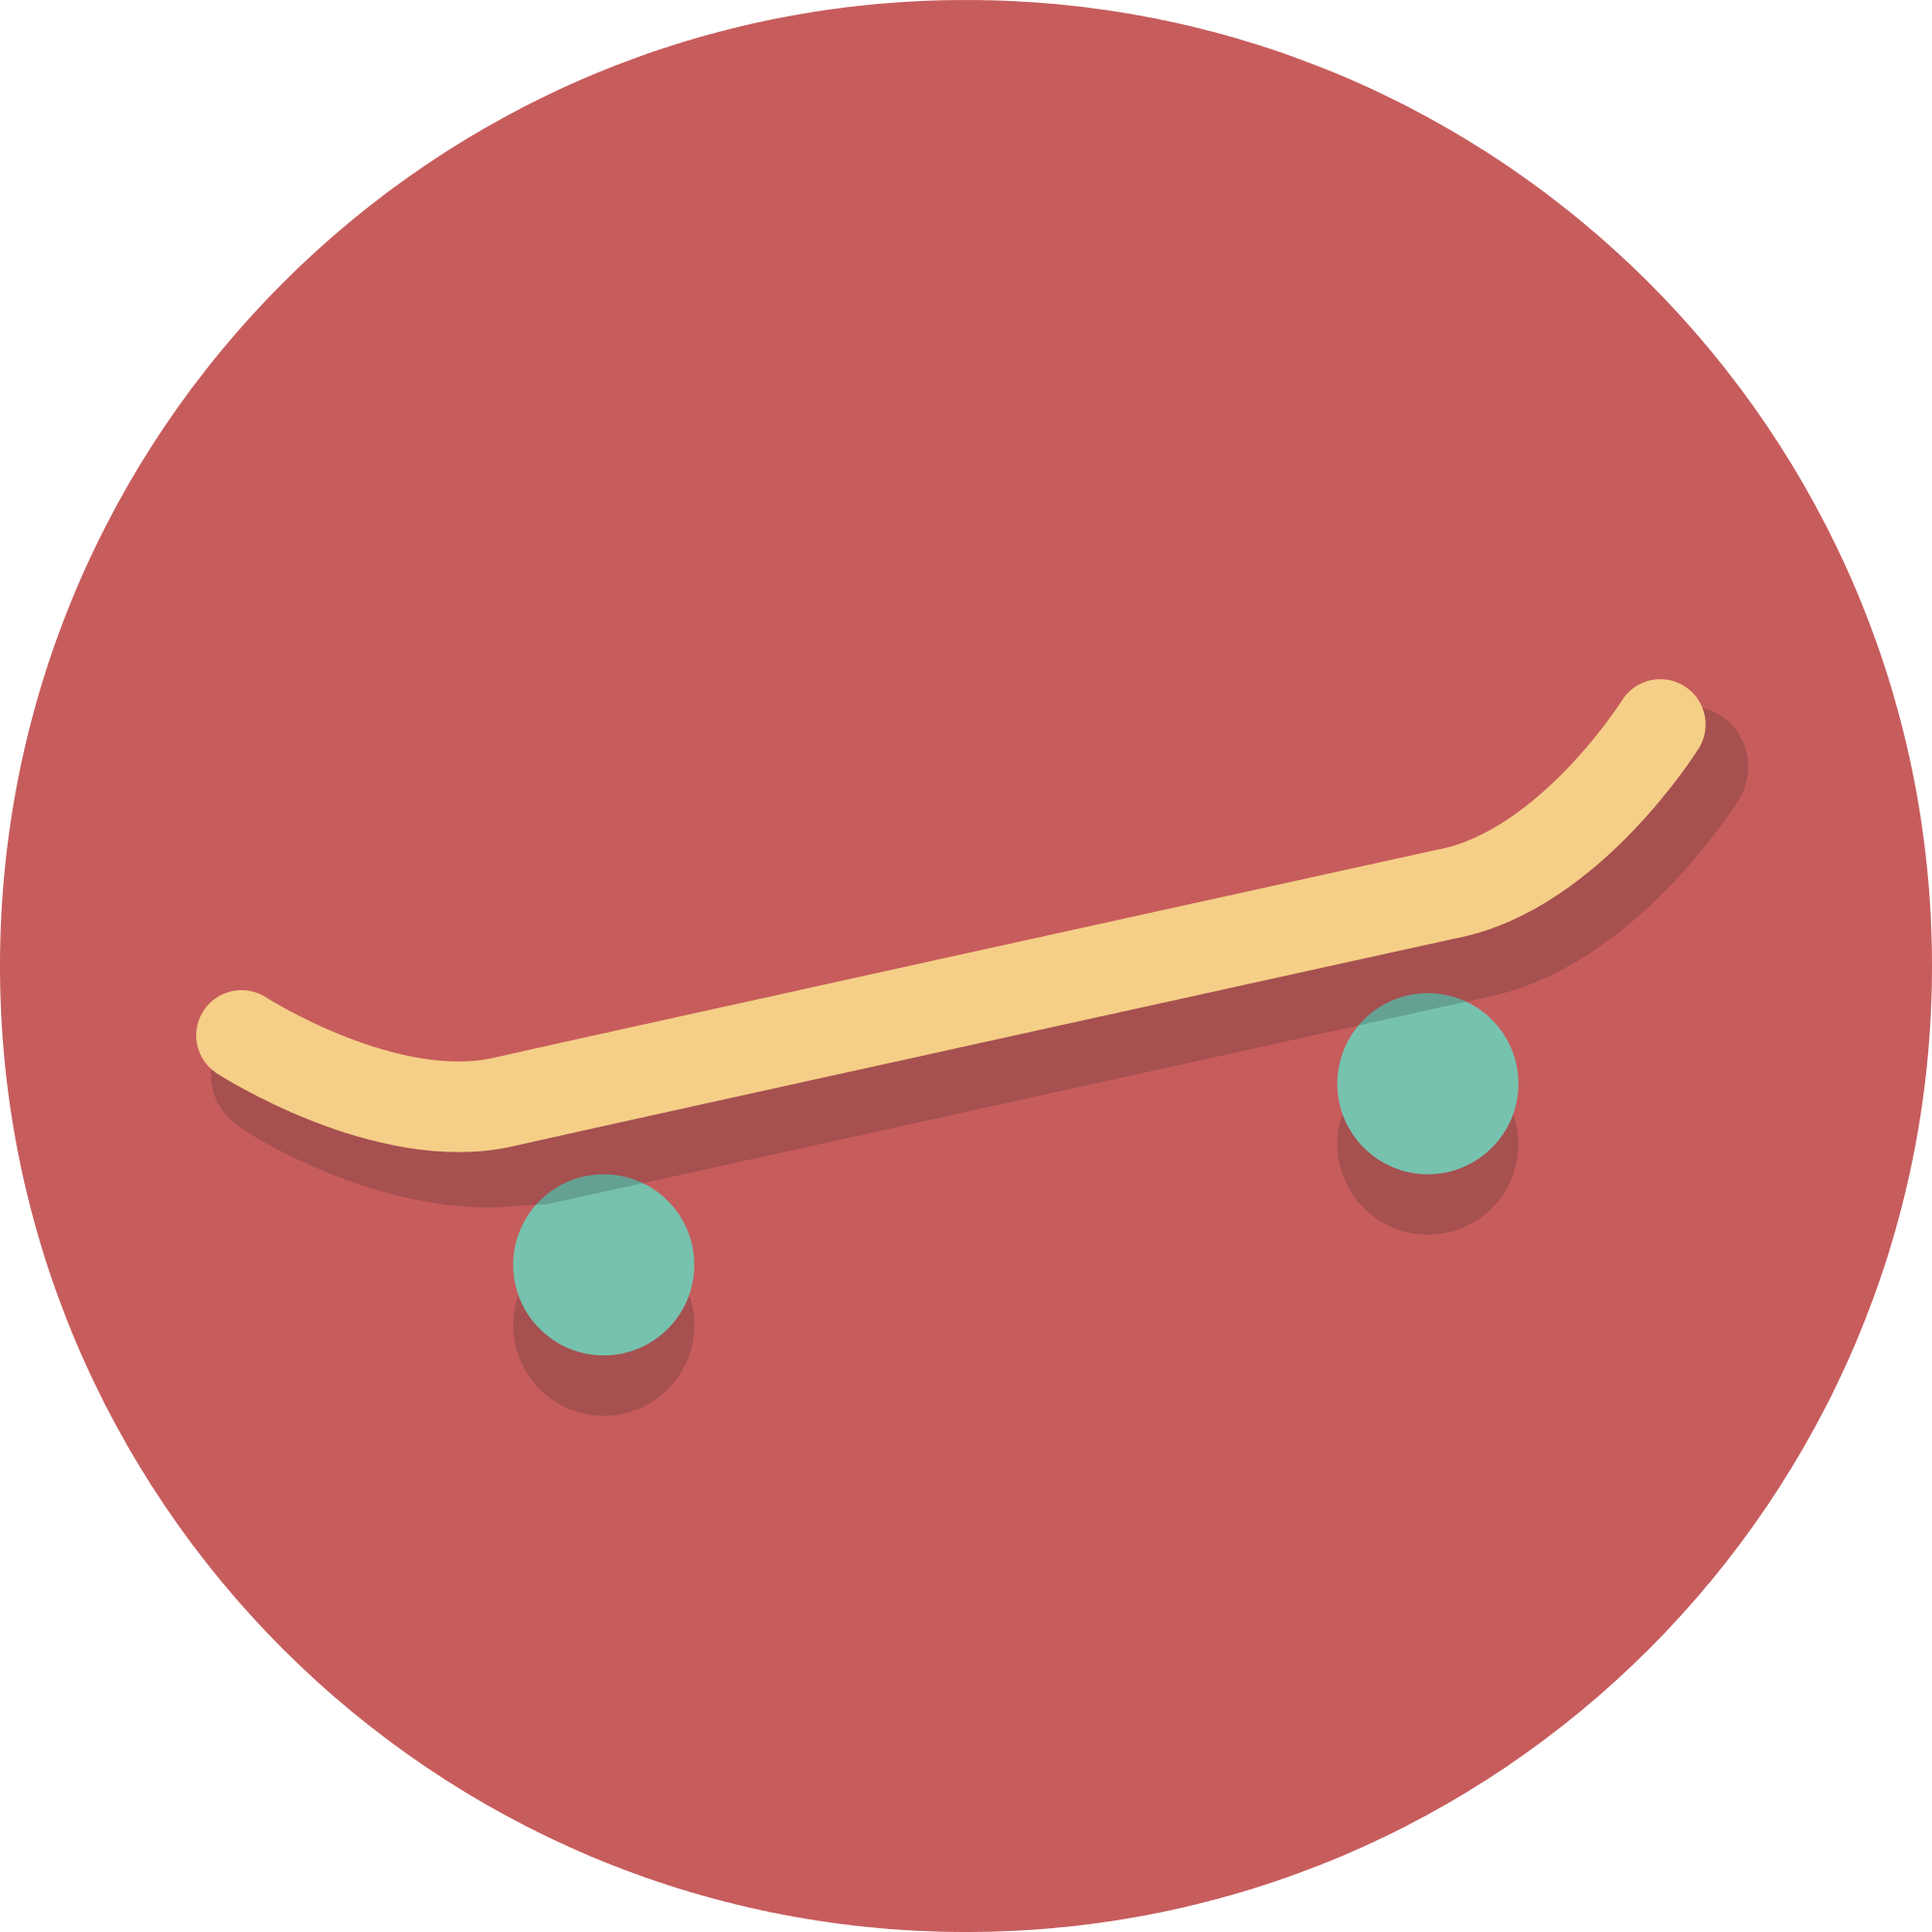 Skateboard svg #17, Download drawings